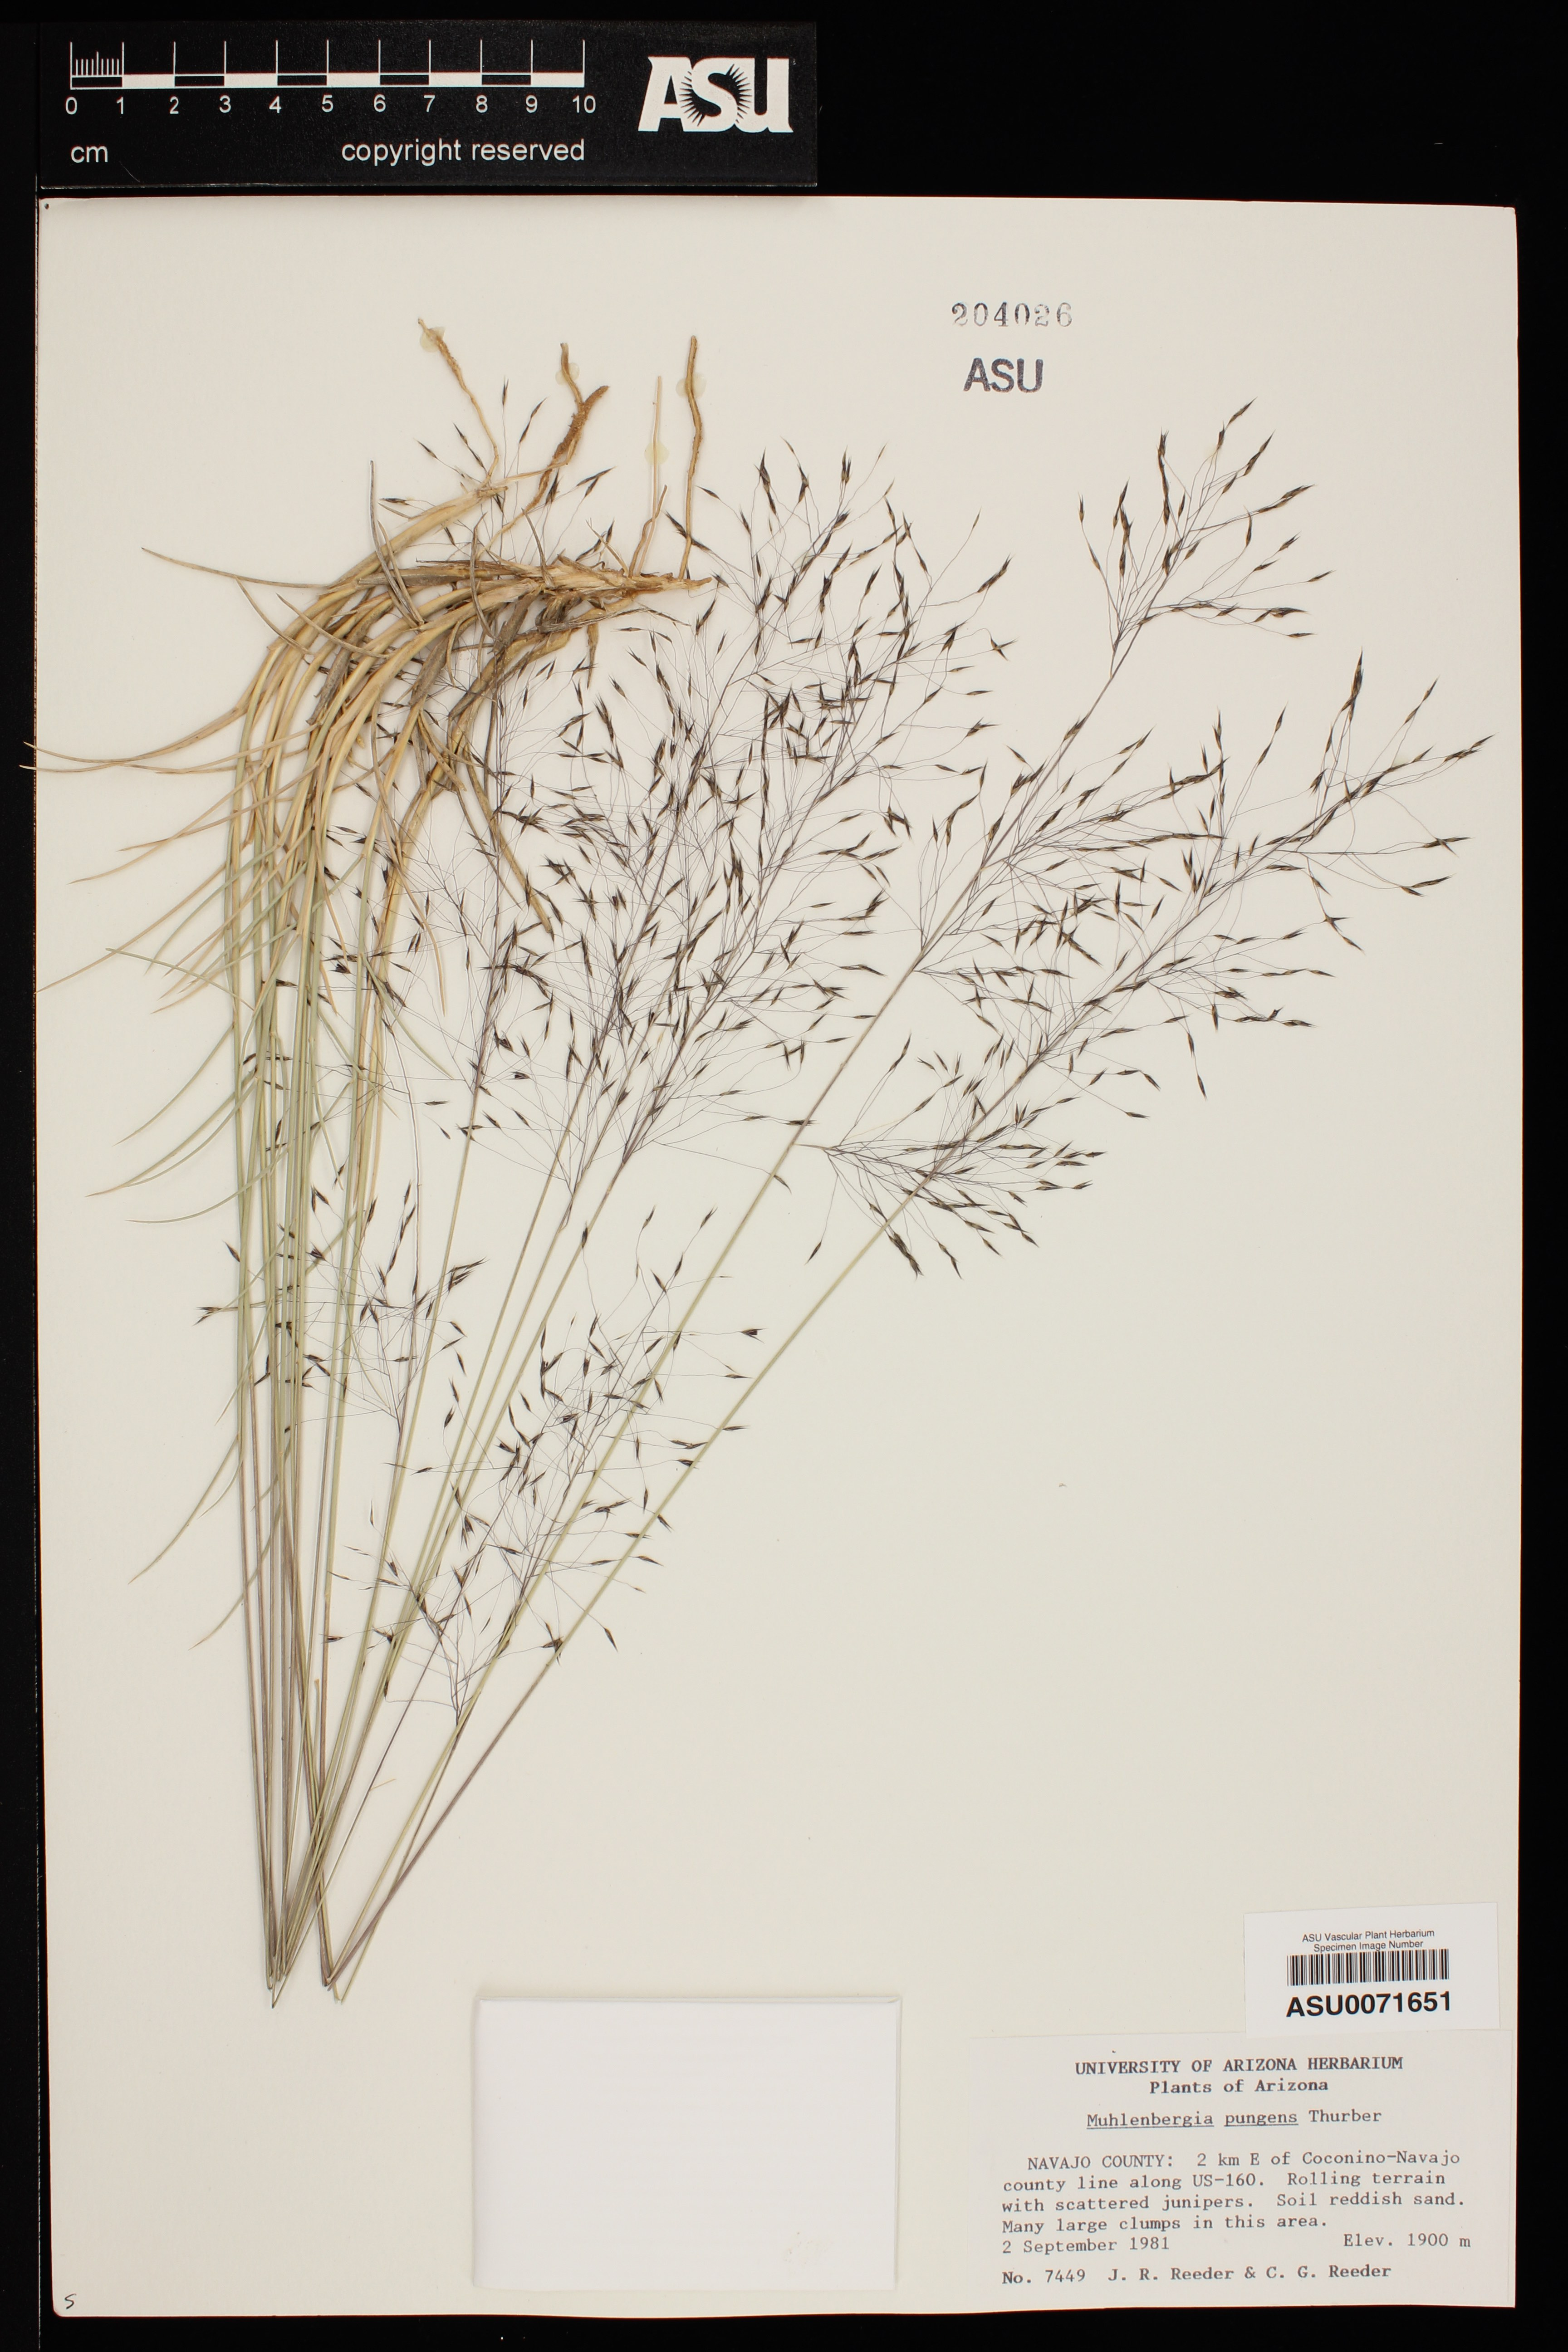 Herbarium photo of a clump of grass showing leaves and copious seedheads